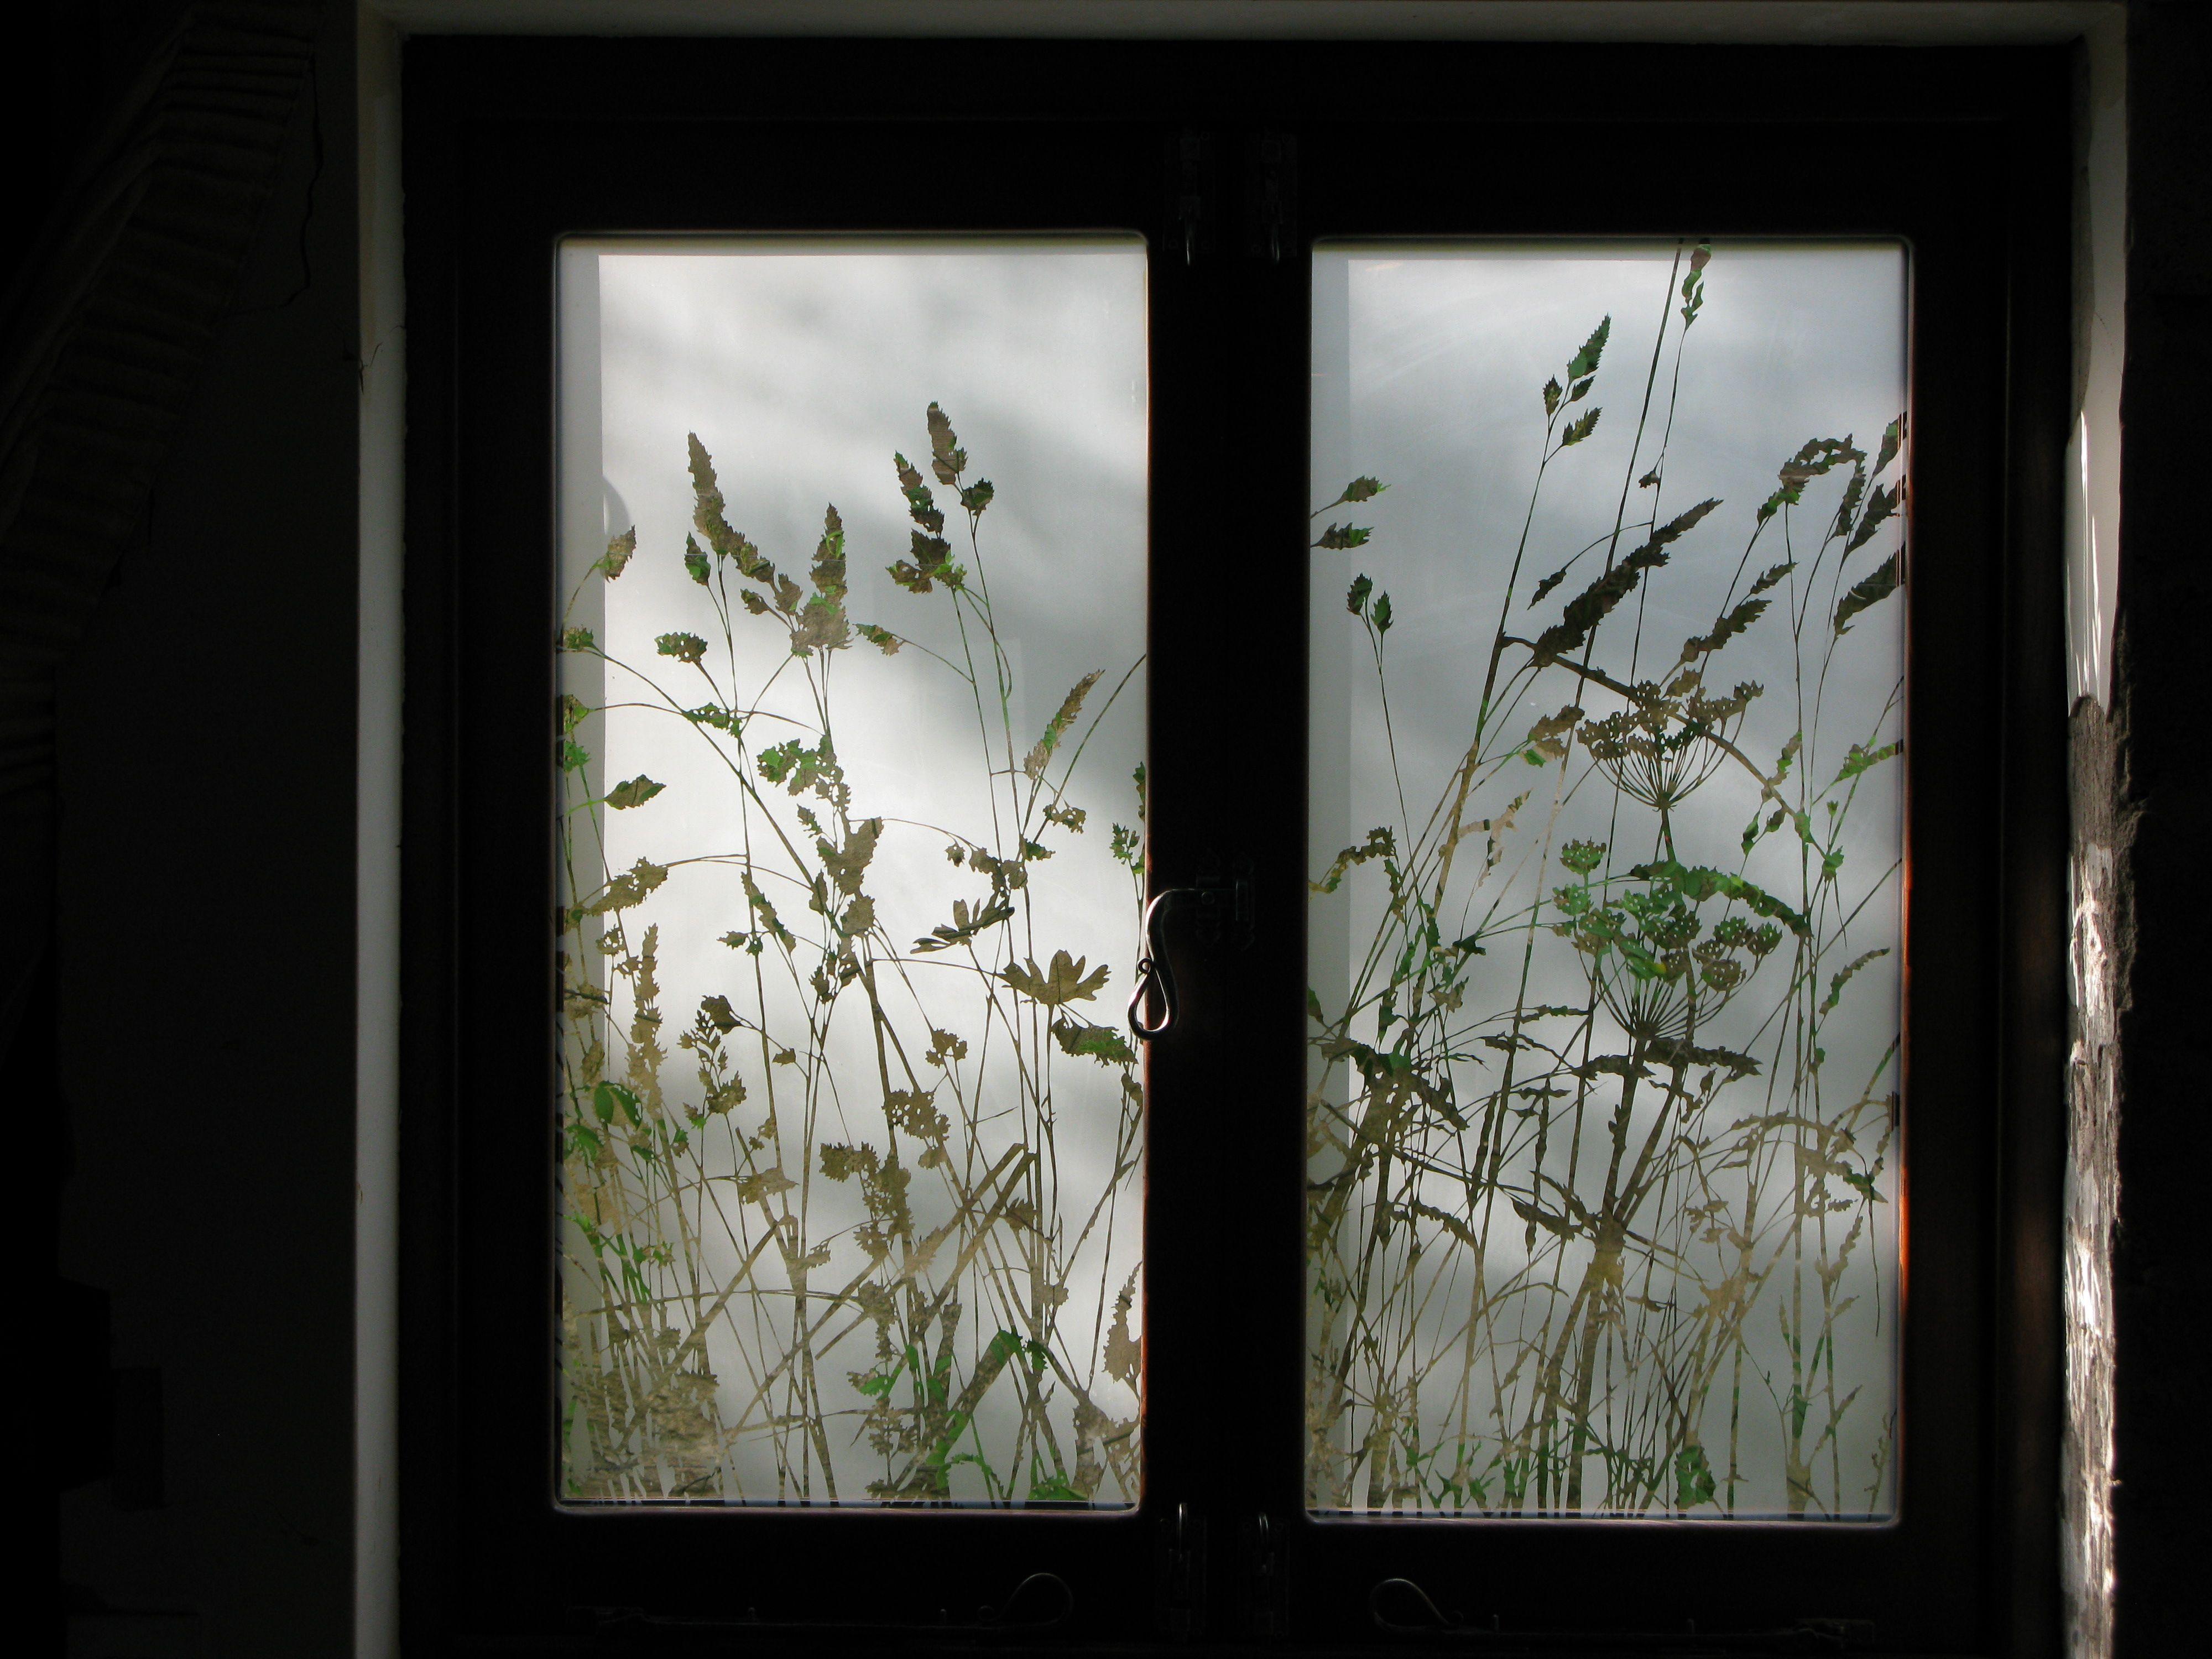 Wild Grasses Etched Into Double Glazed Kitchen Windows Creating Privacy From The Street Poutside Window Film Designs Hallway Ideas Diy Hanging Pictures